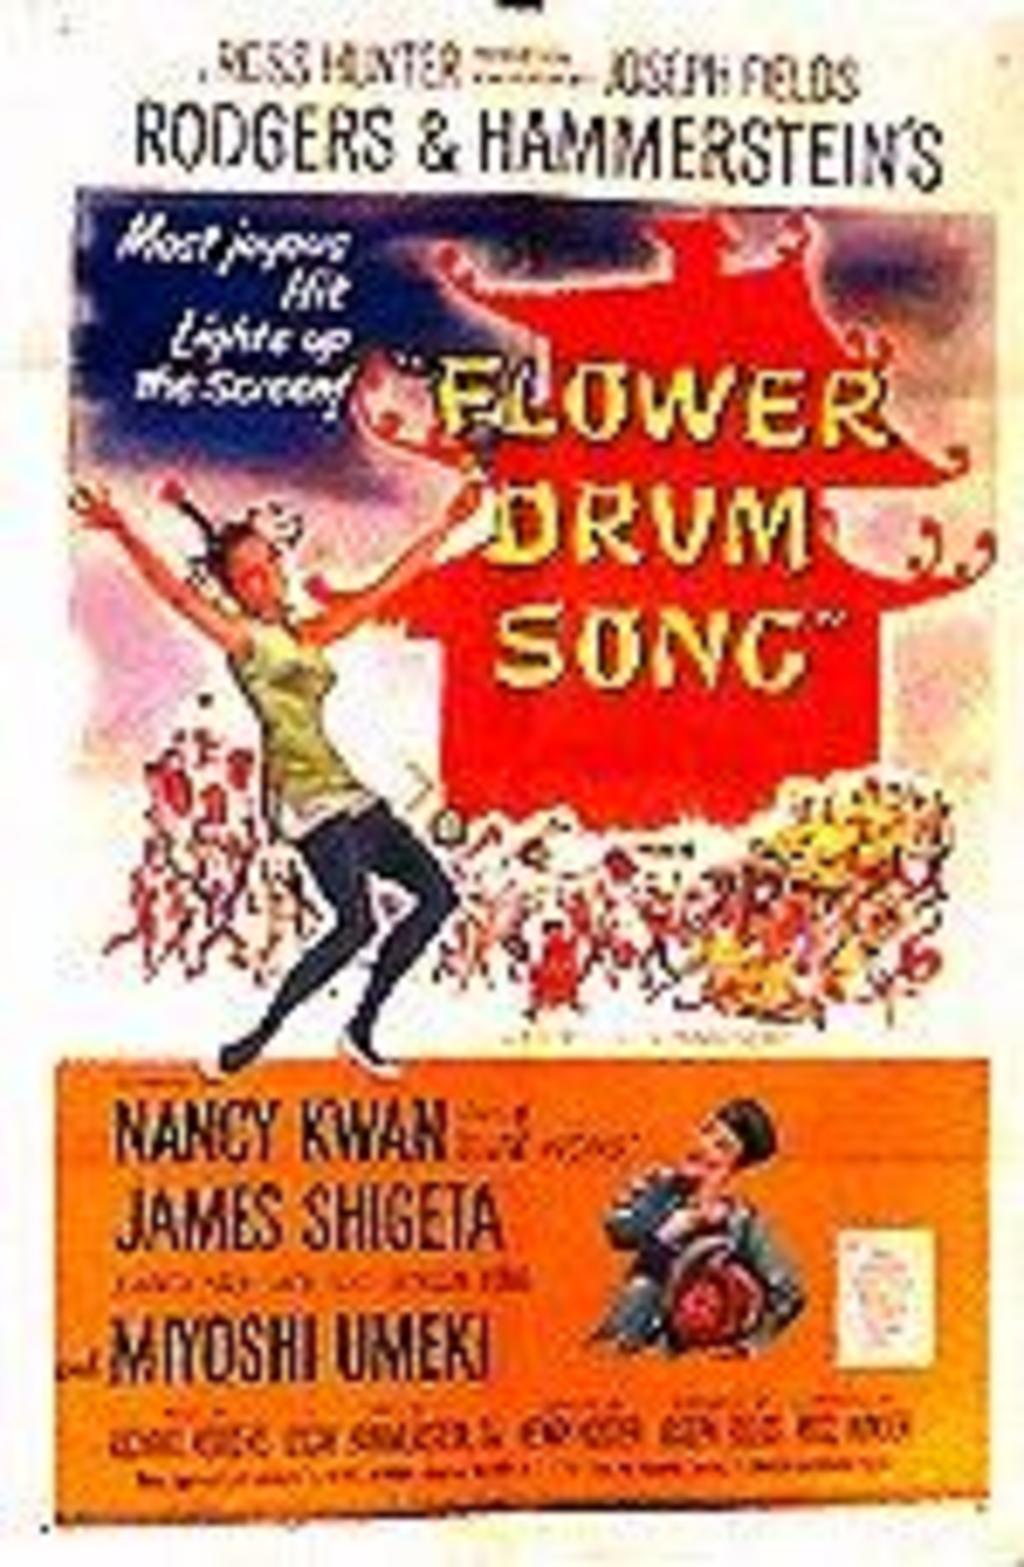 Watch Flower Drum Song on Netflix Today